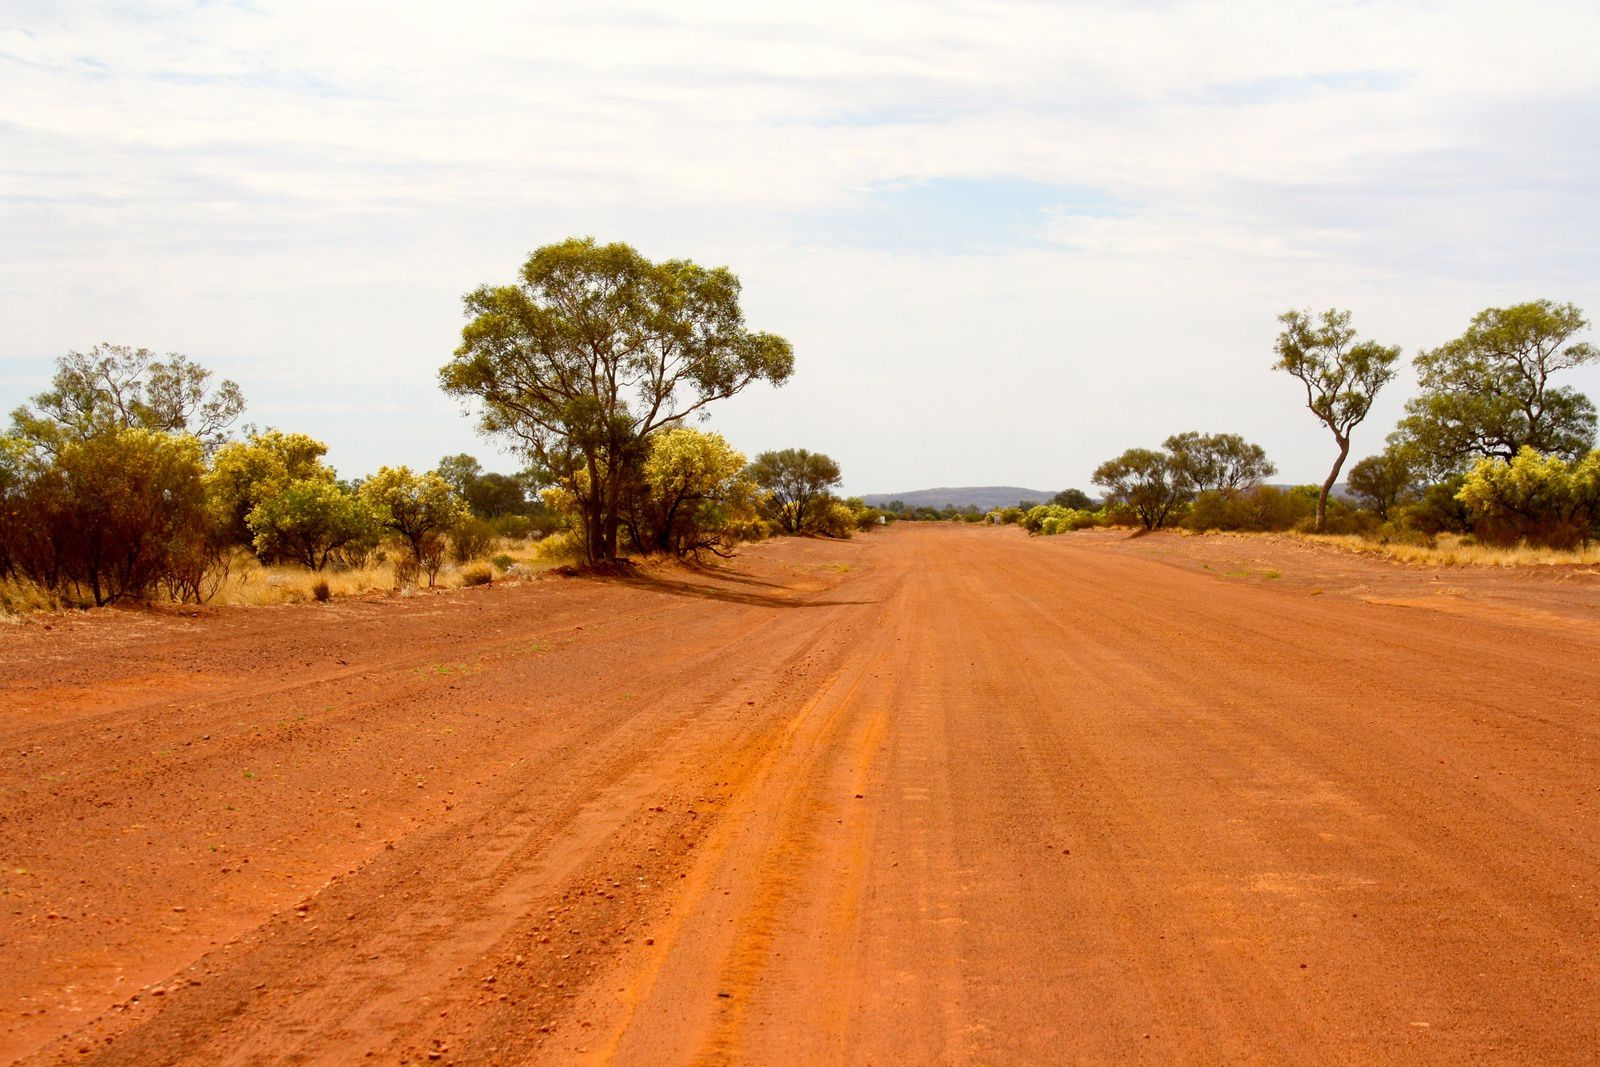 On the way to the Red Centre ...